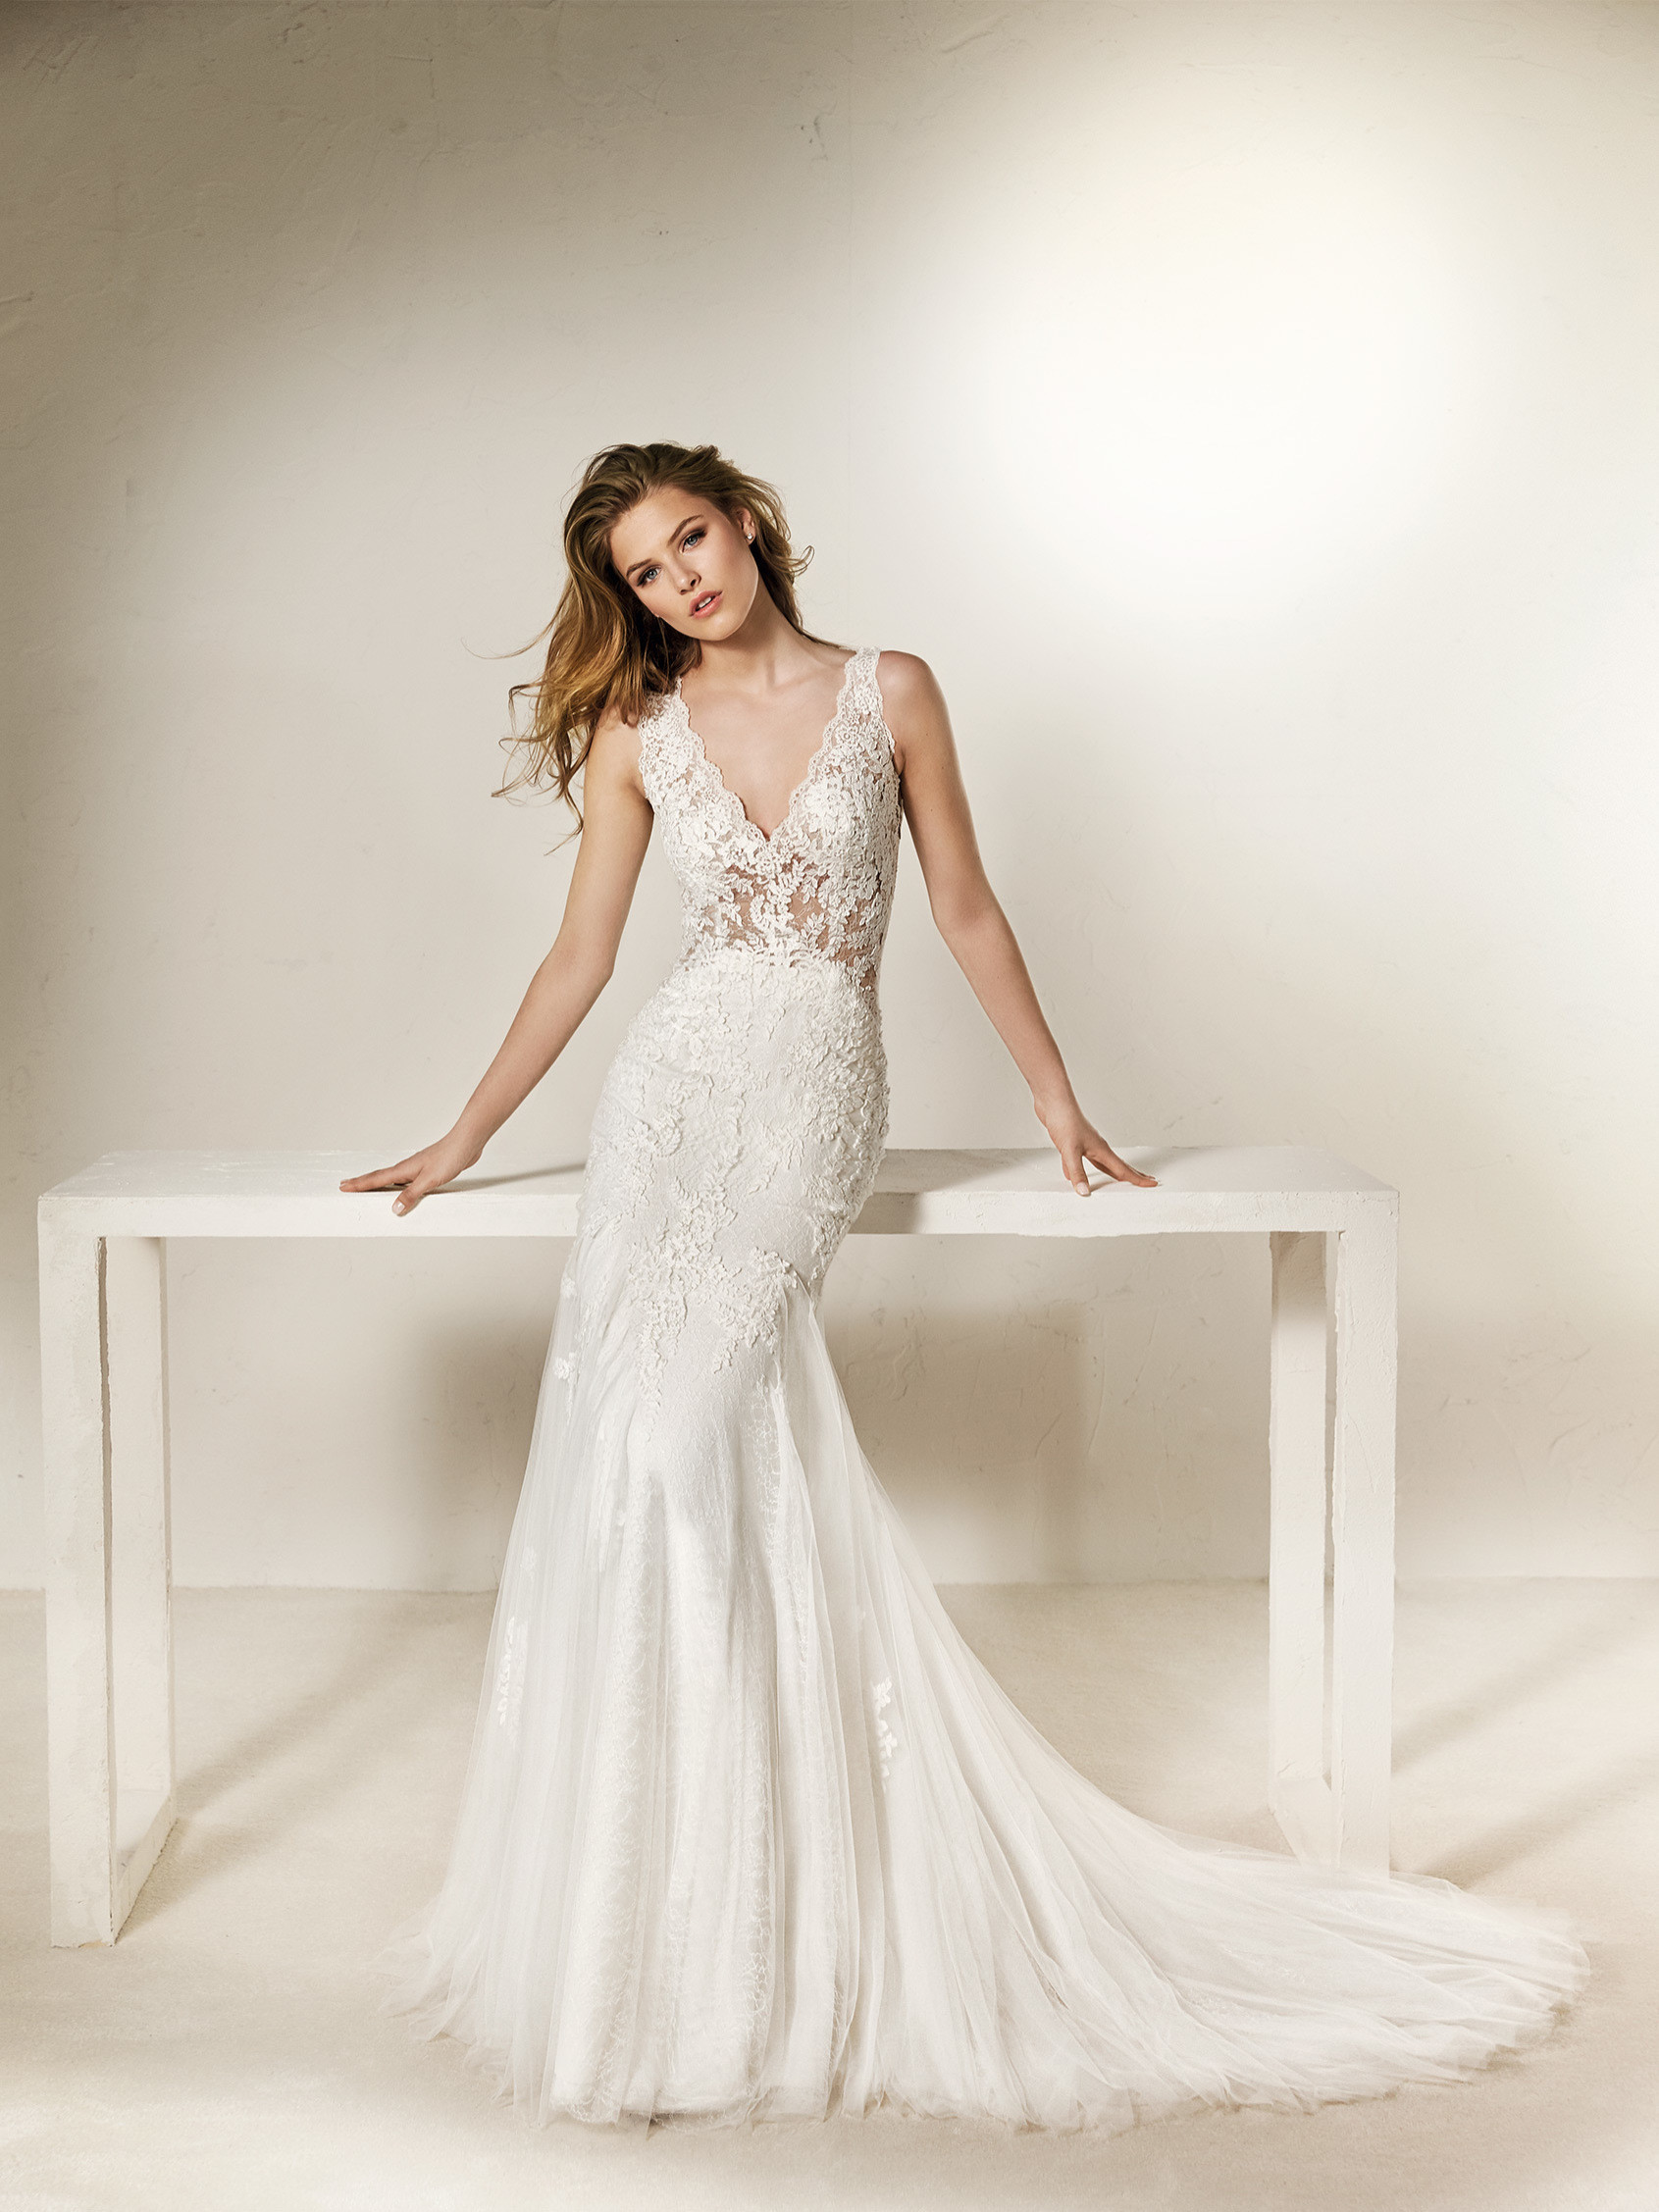 Chanai Mermaid Wedding Dress With Illusions And Flowers